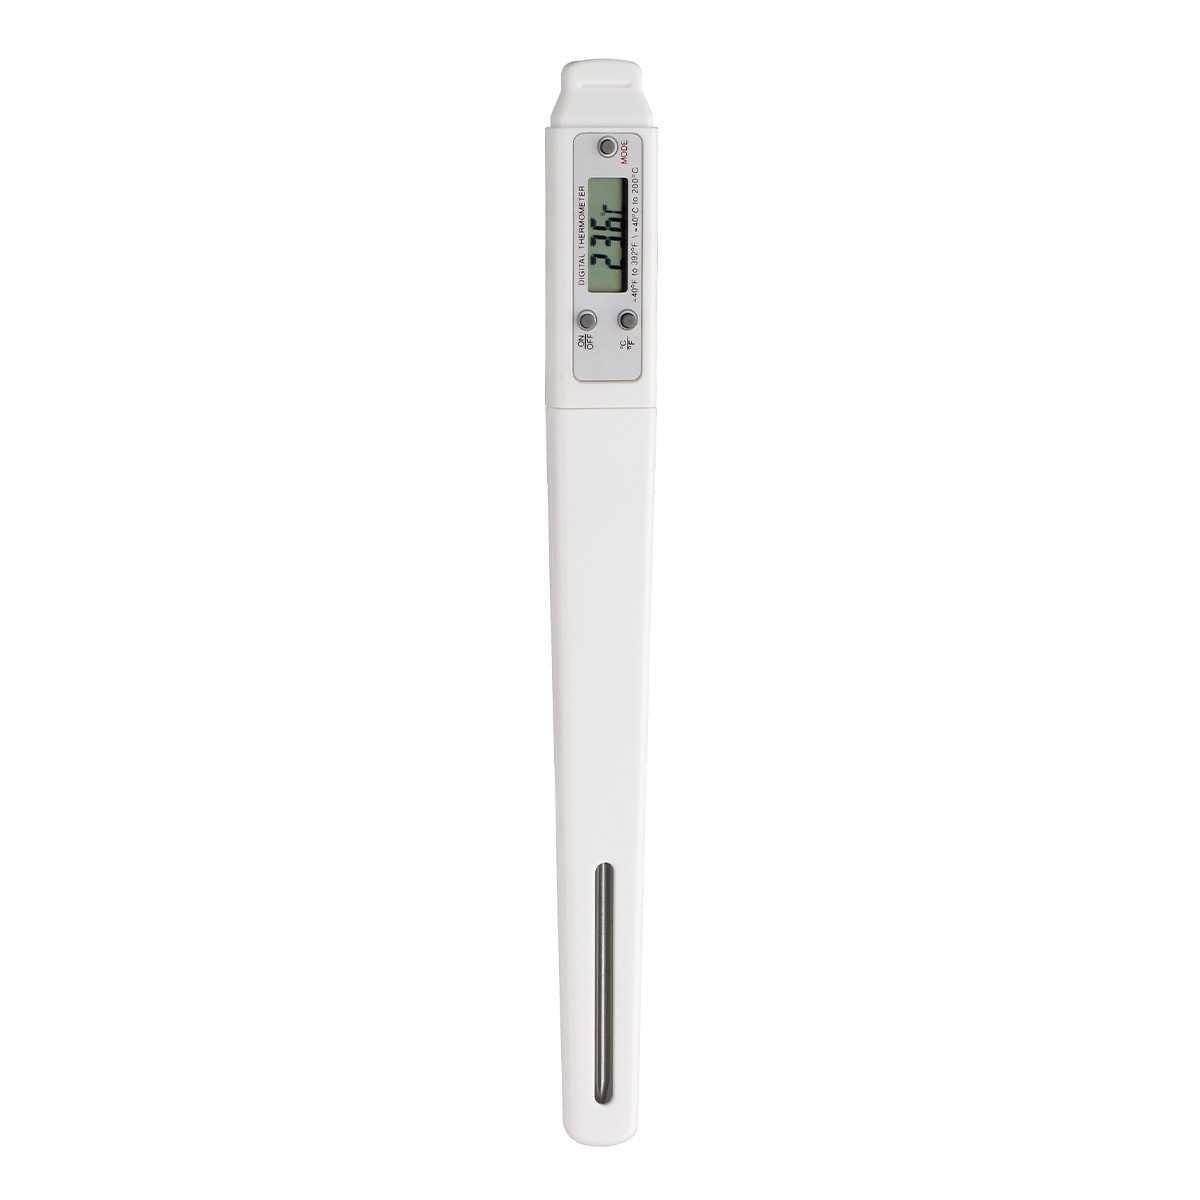 30-1018-digitales-einstich-thermometer-pocket-digitemp-ansicht1-1200x1200px.jpg